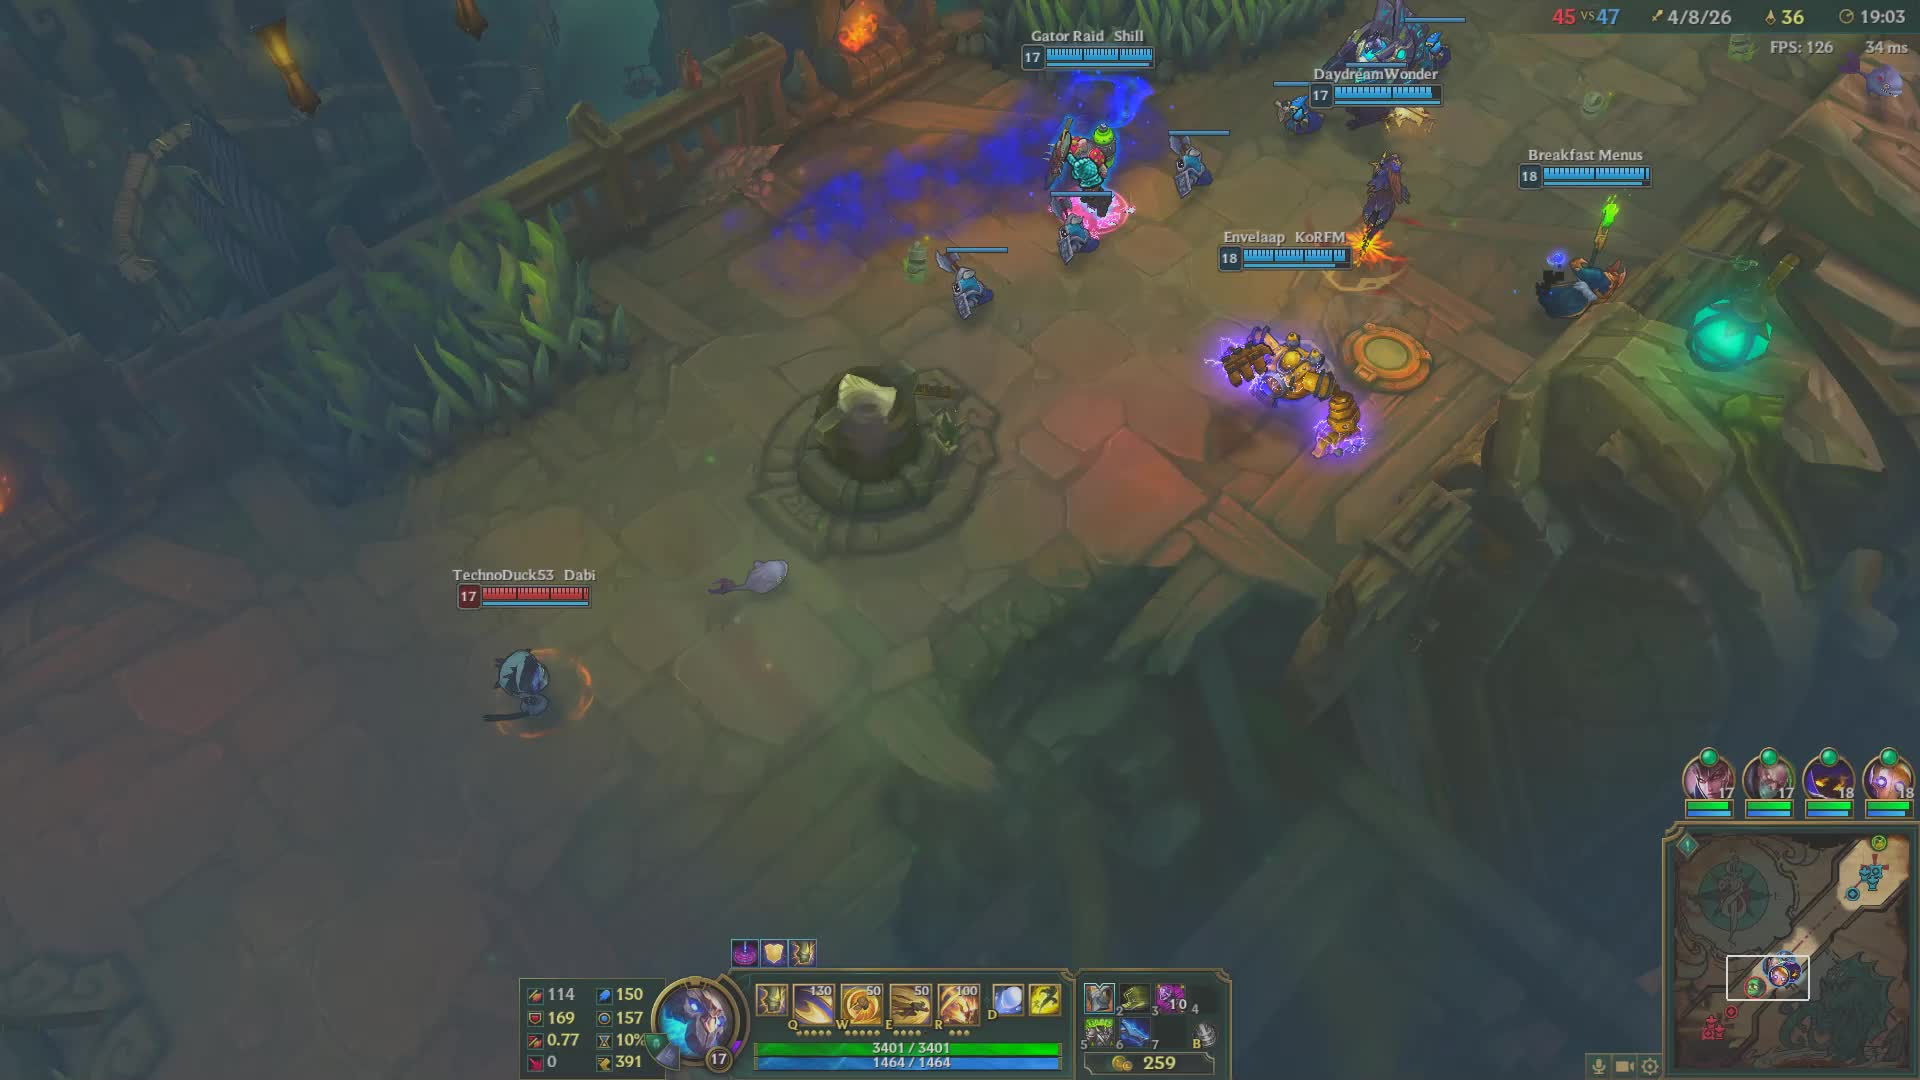 leagueoflegends, Aram fight GIFs